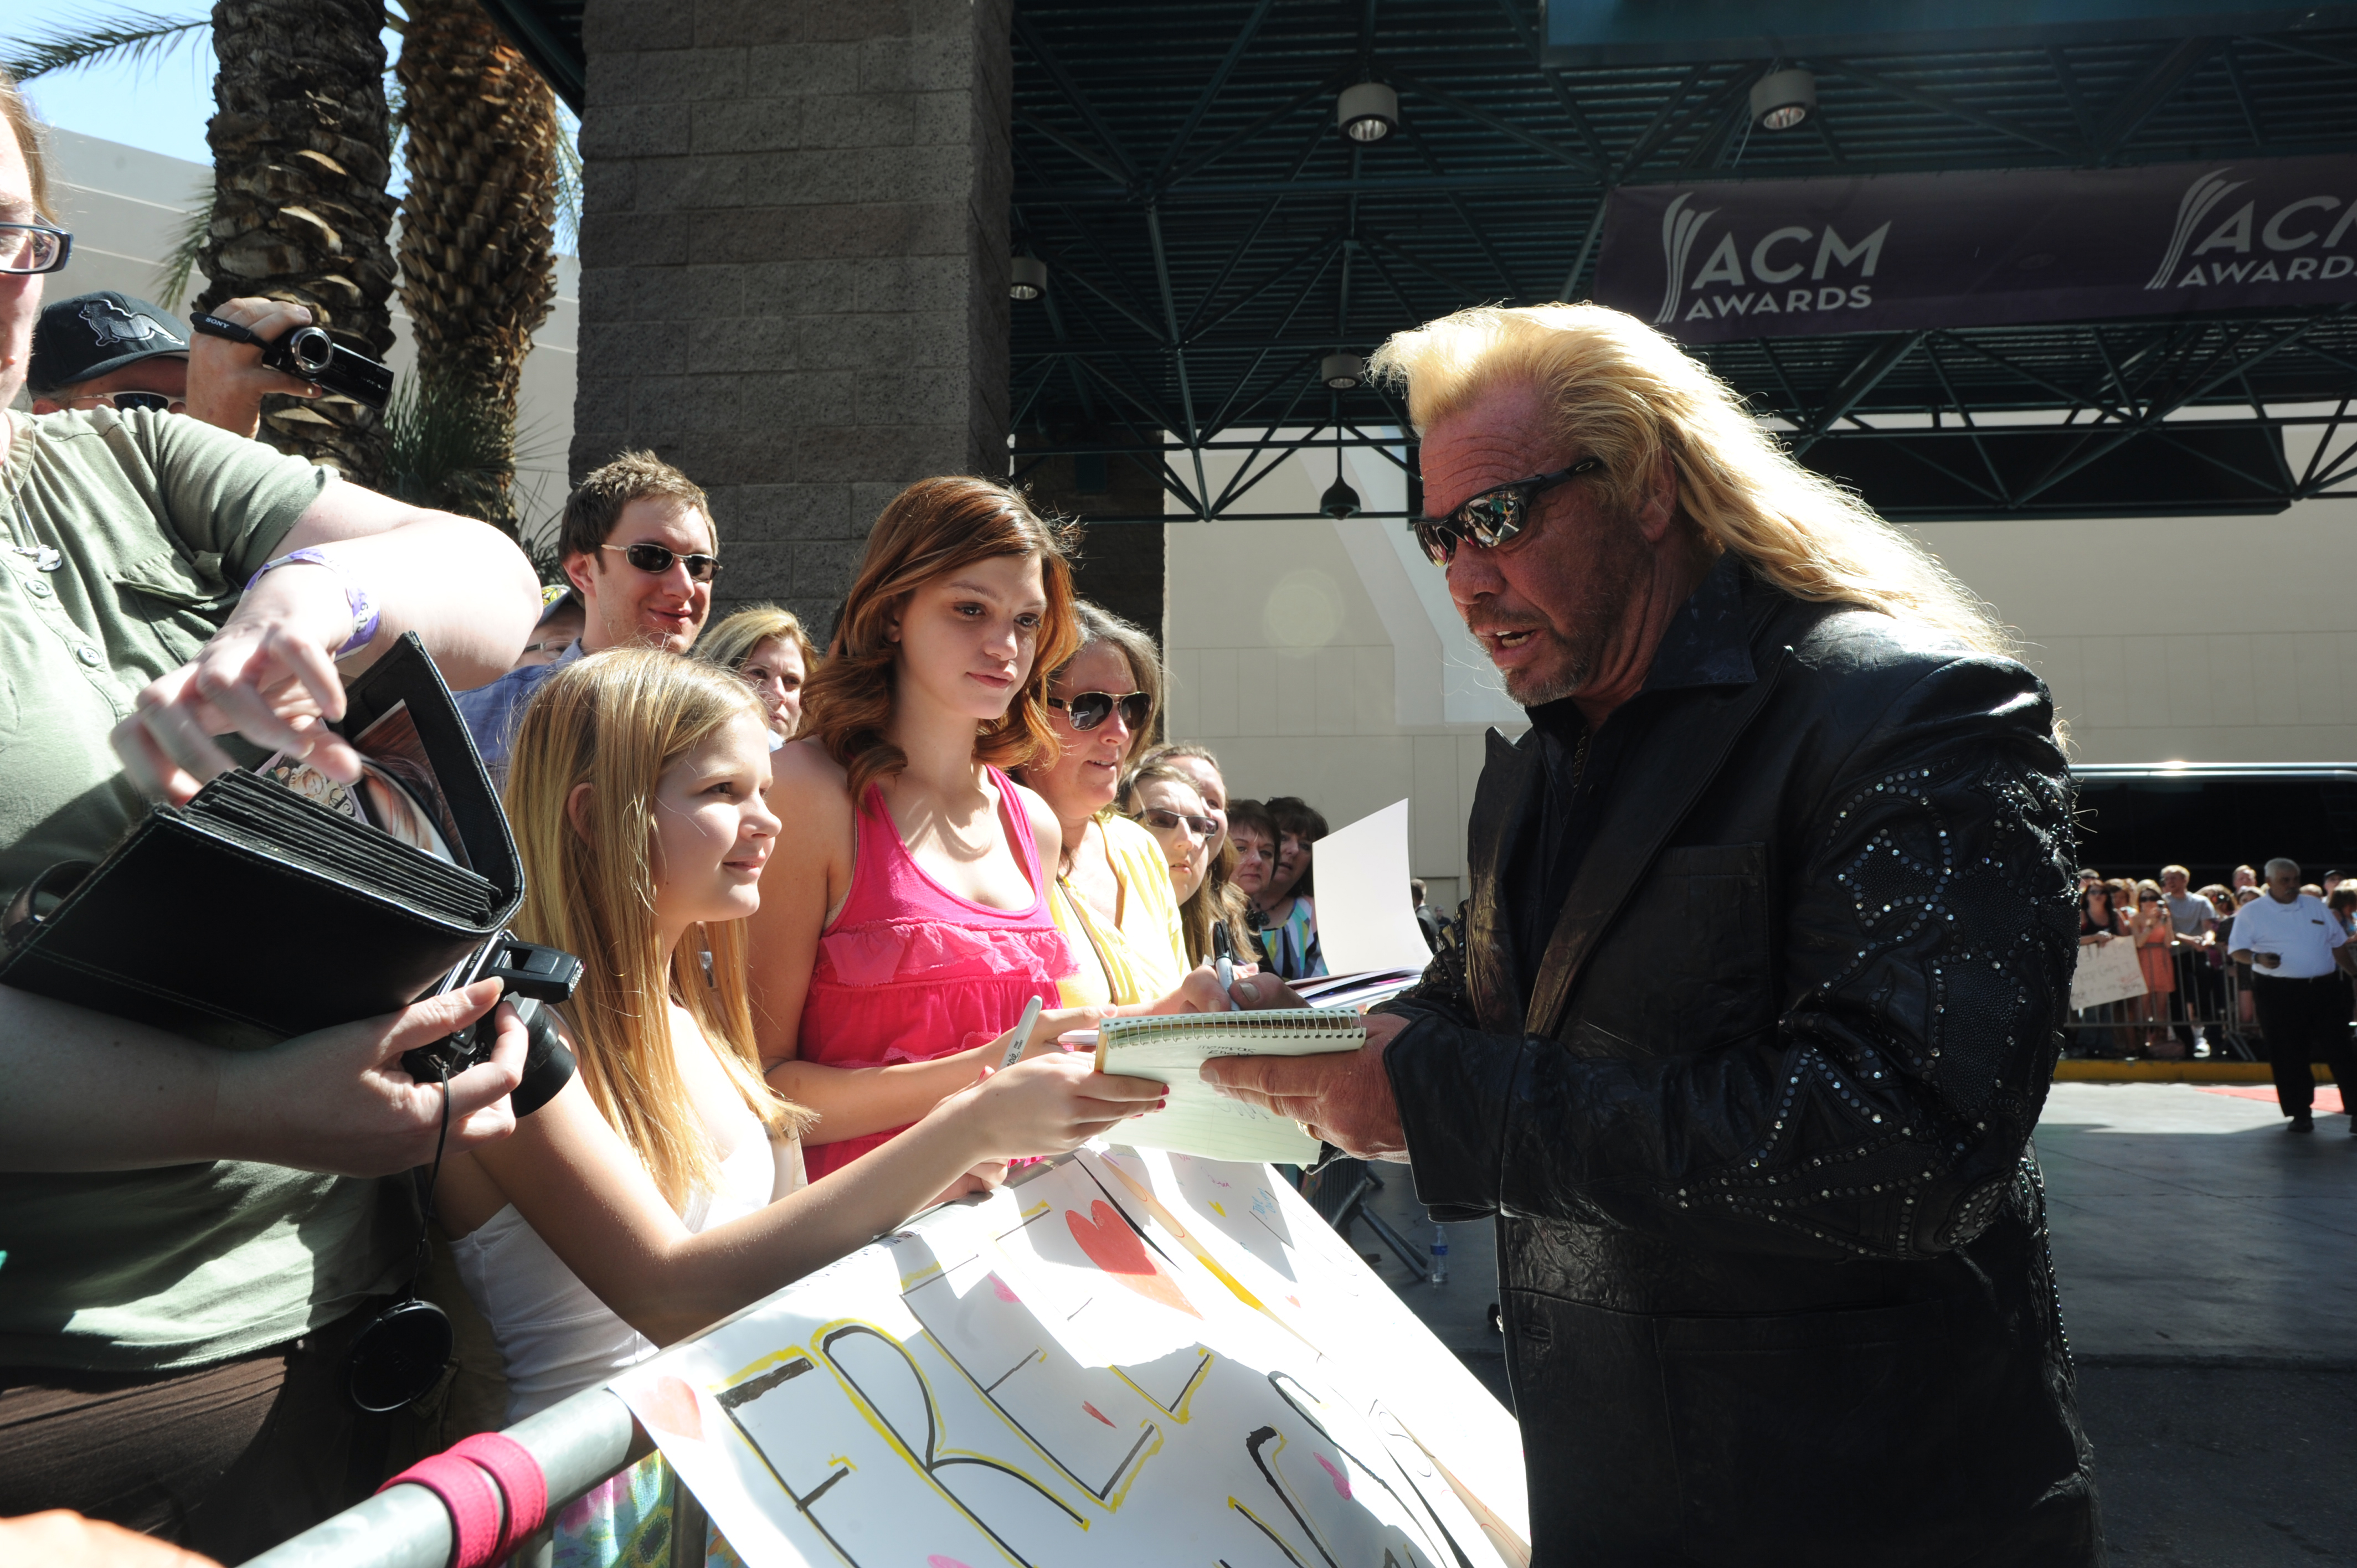 Duane 'Dog' Chapman on the Red Carpet - 48th ACM Awards